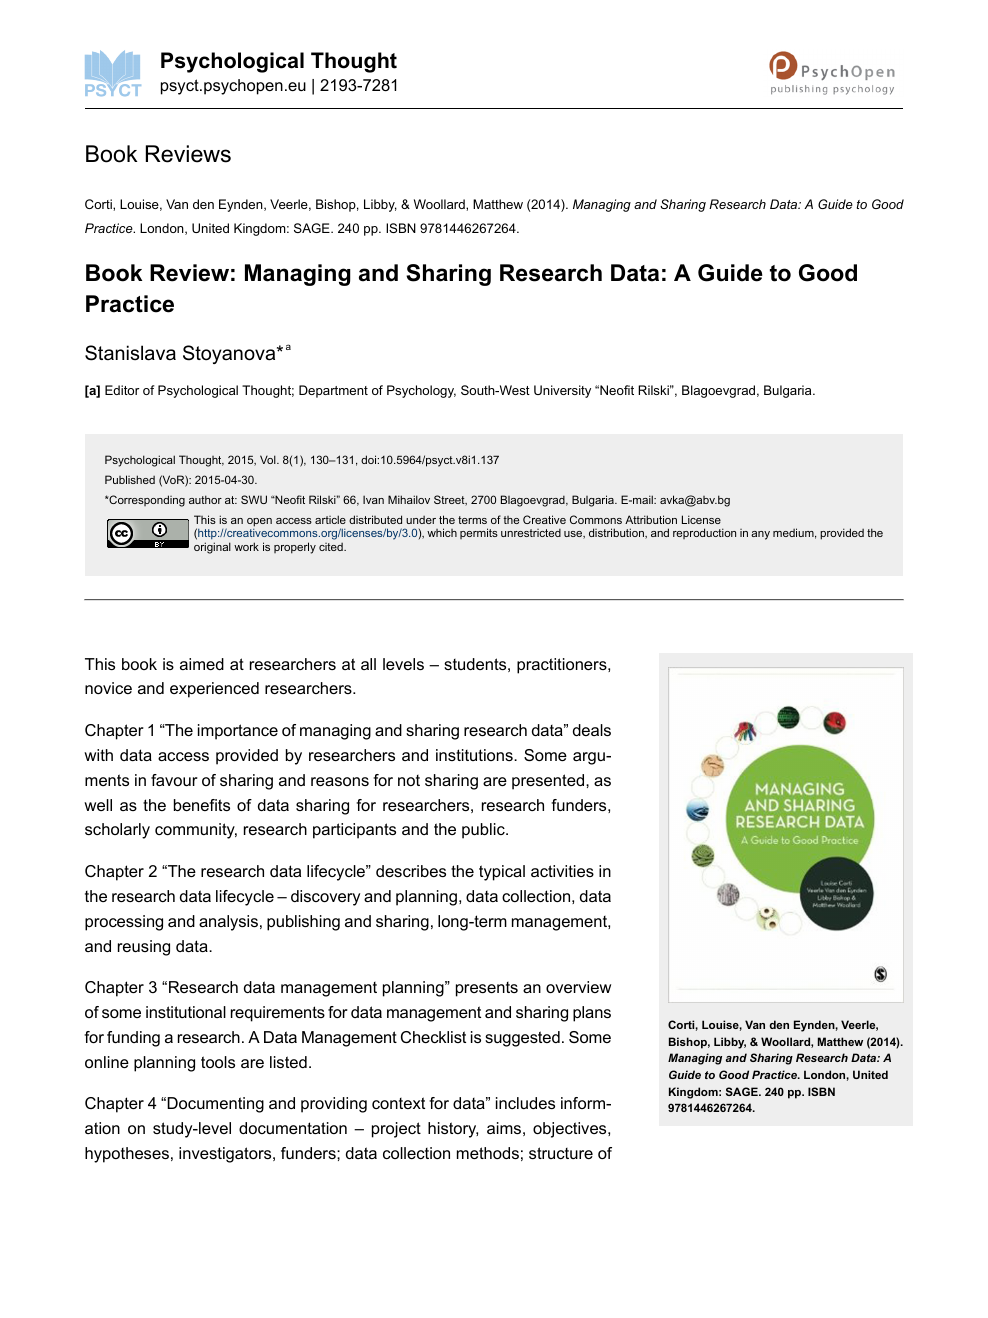 Book Review: Managing and Sharing Research Data: A Guide to Good